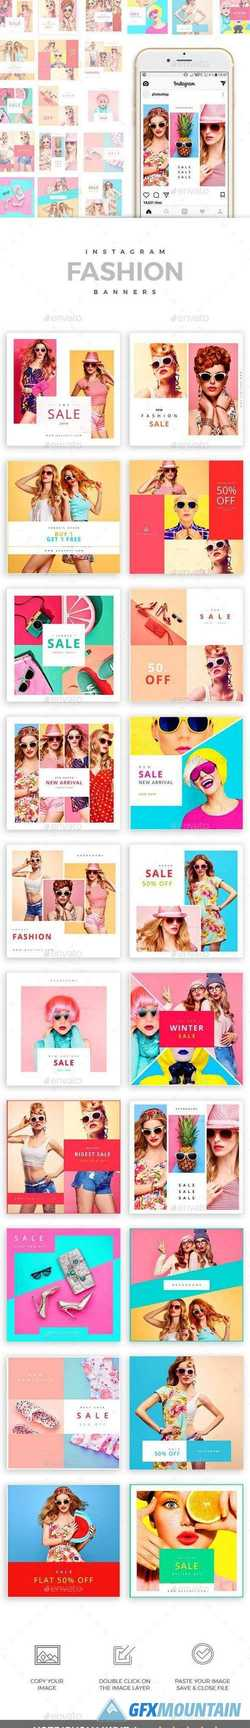 20 - Fashion Instagram Banners 21158757